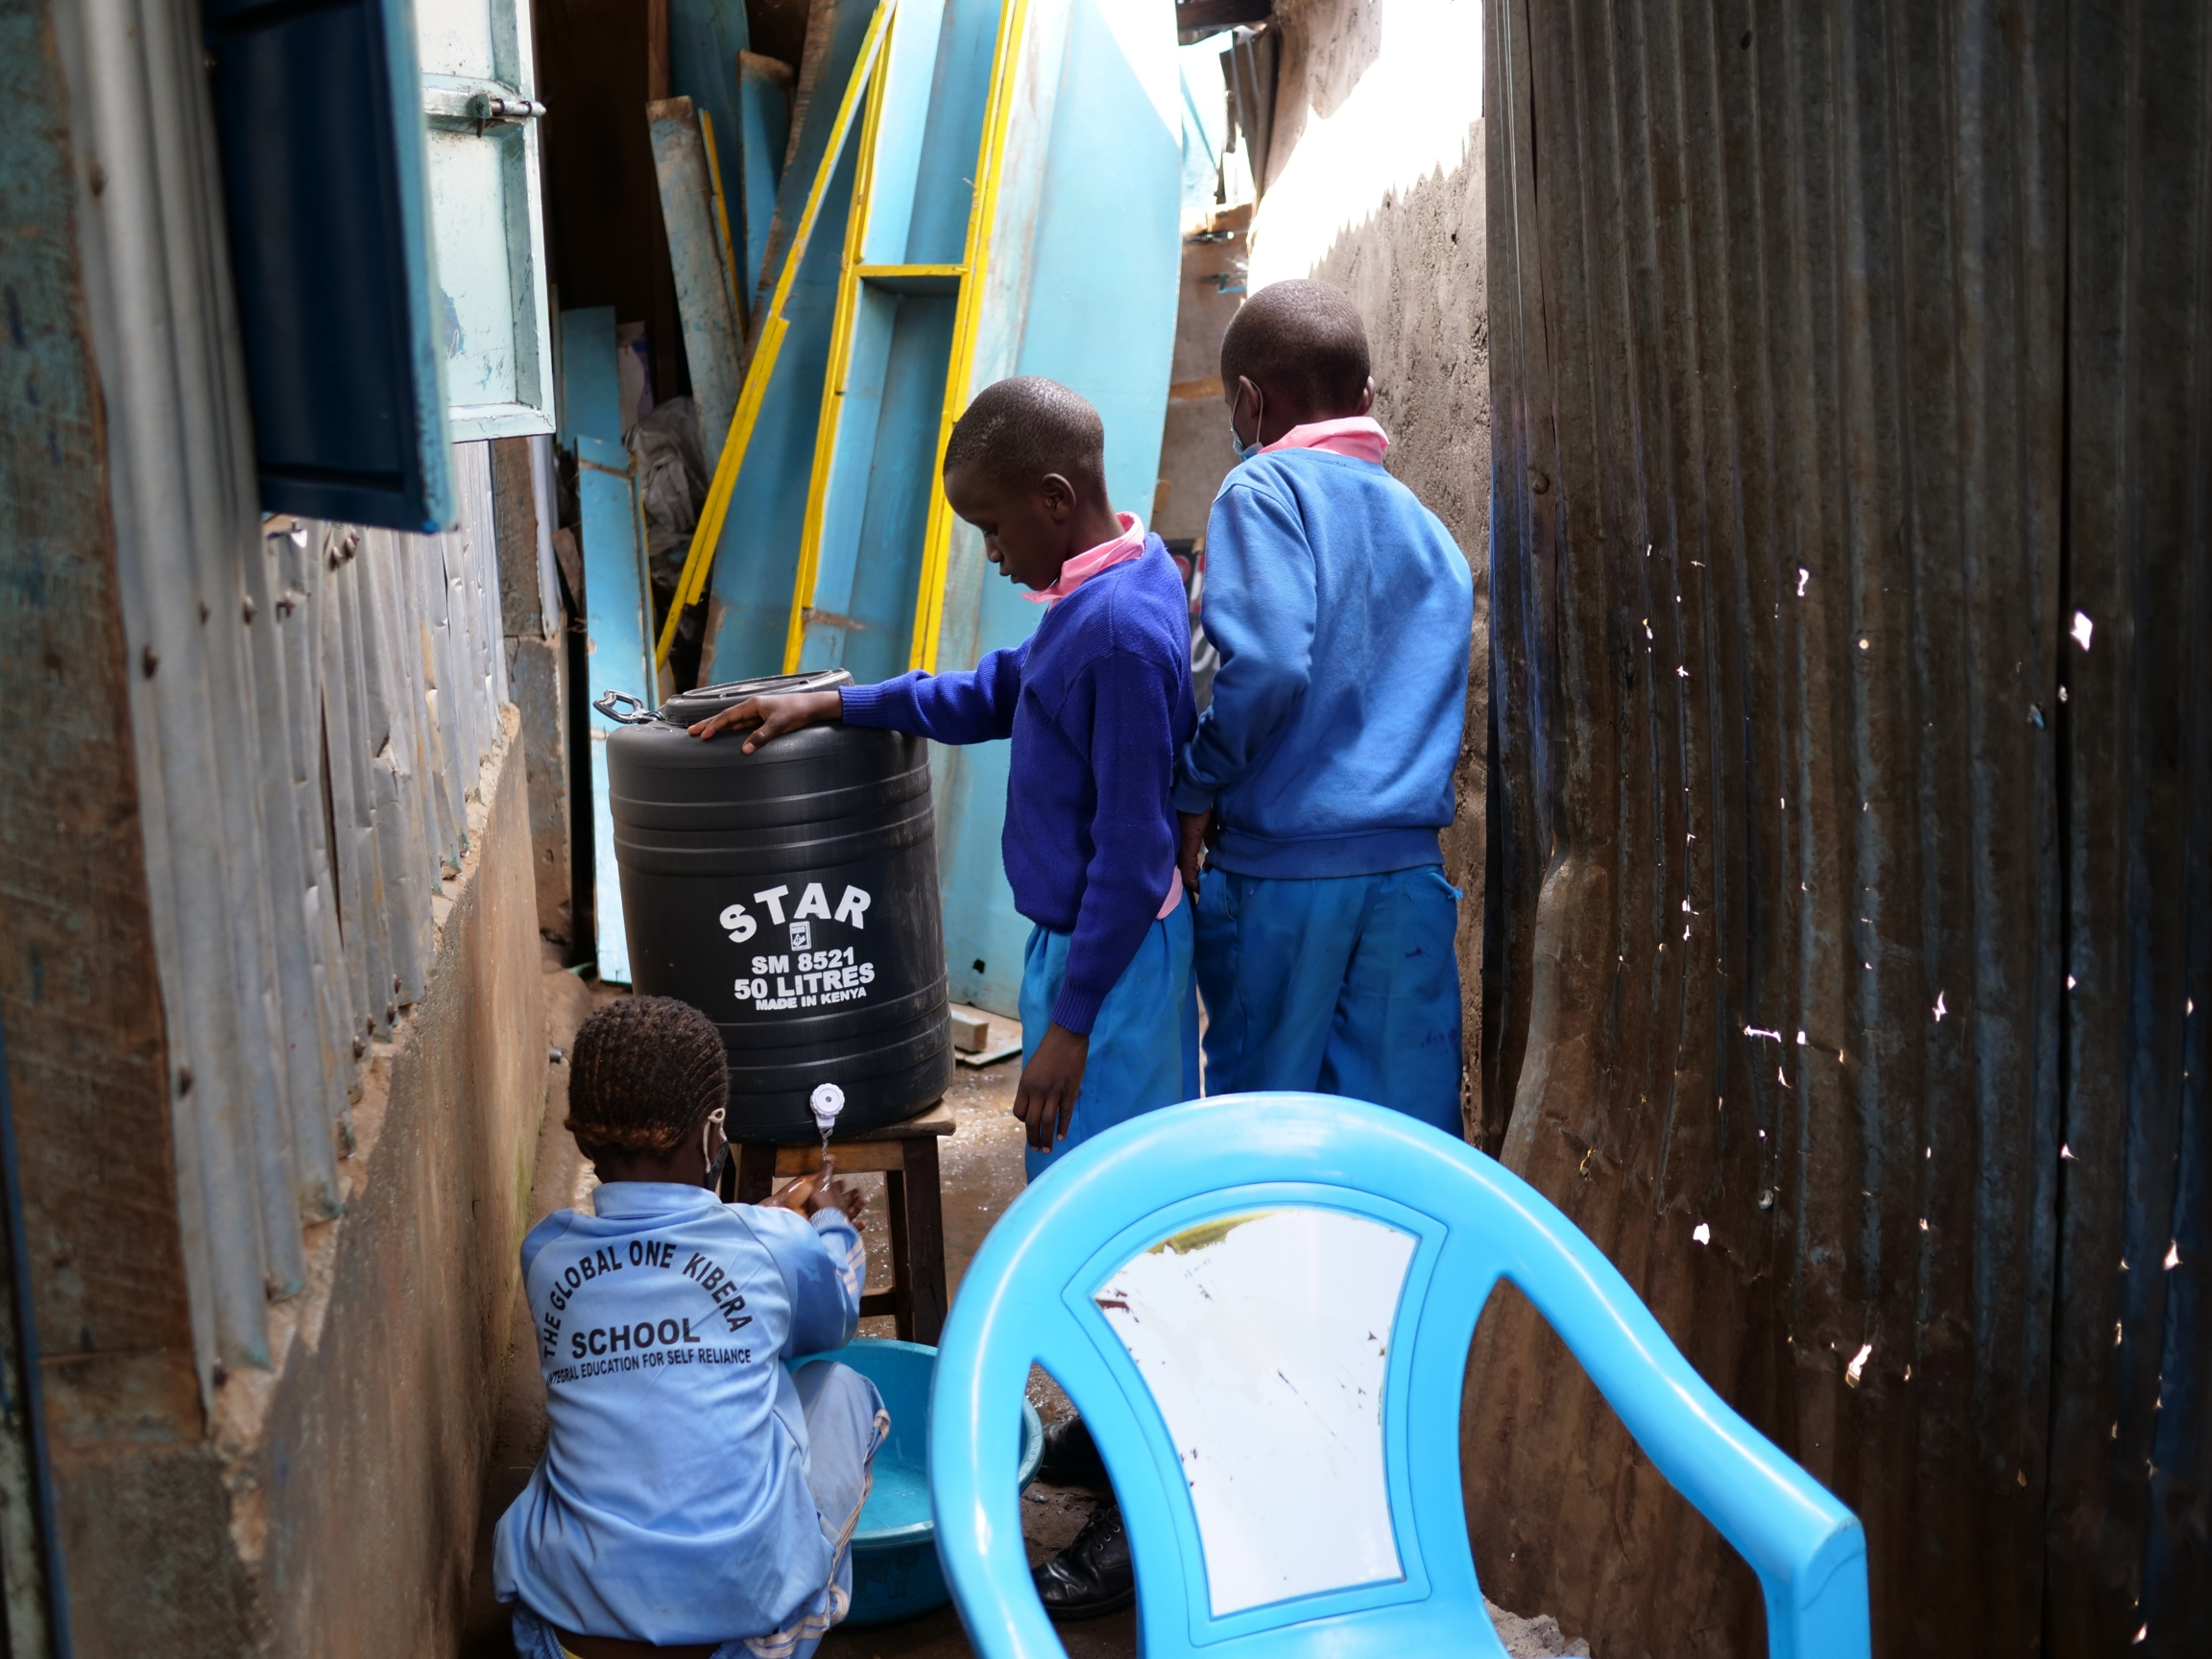 Primary school students wash their hands before a snack break at the Global One School in Nairobi, Kenya.